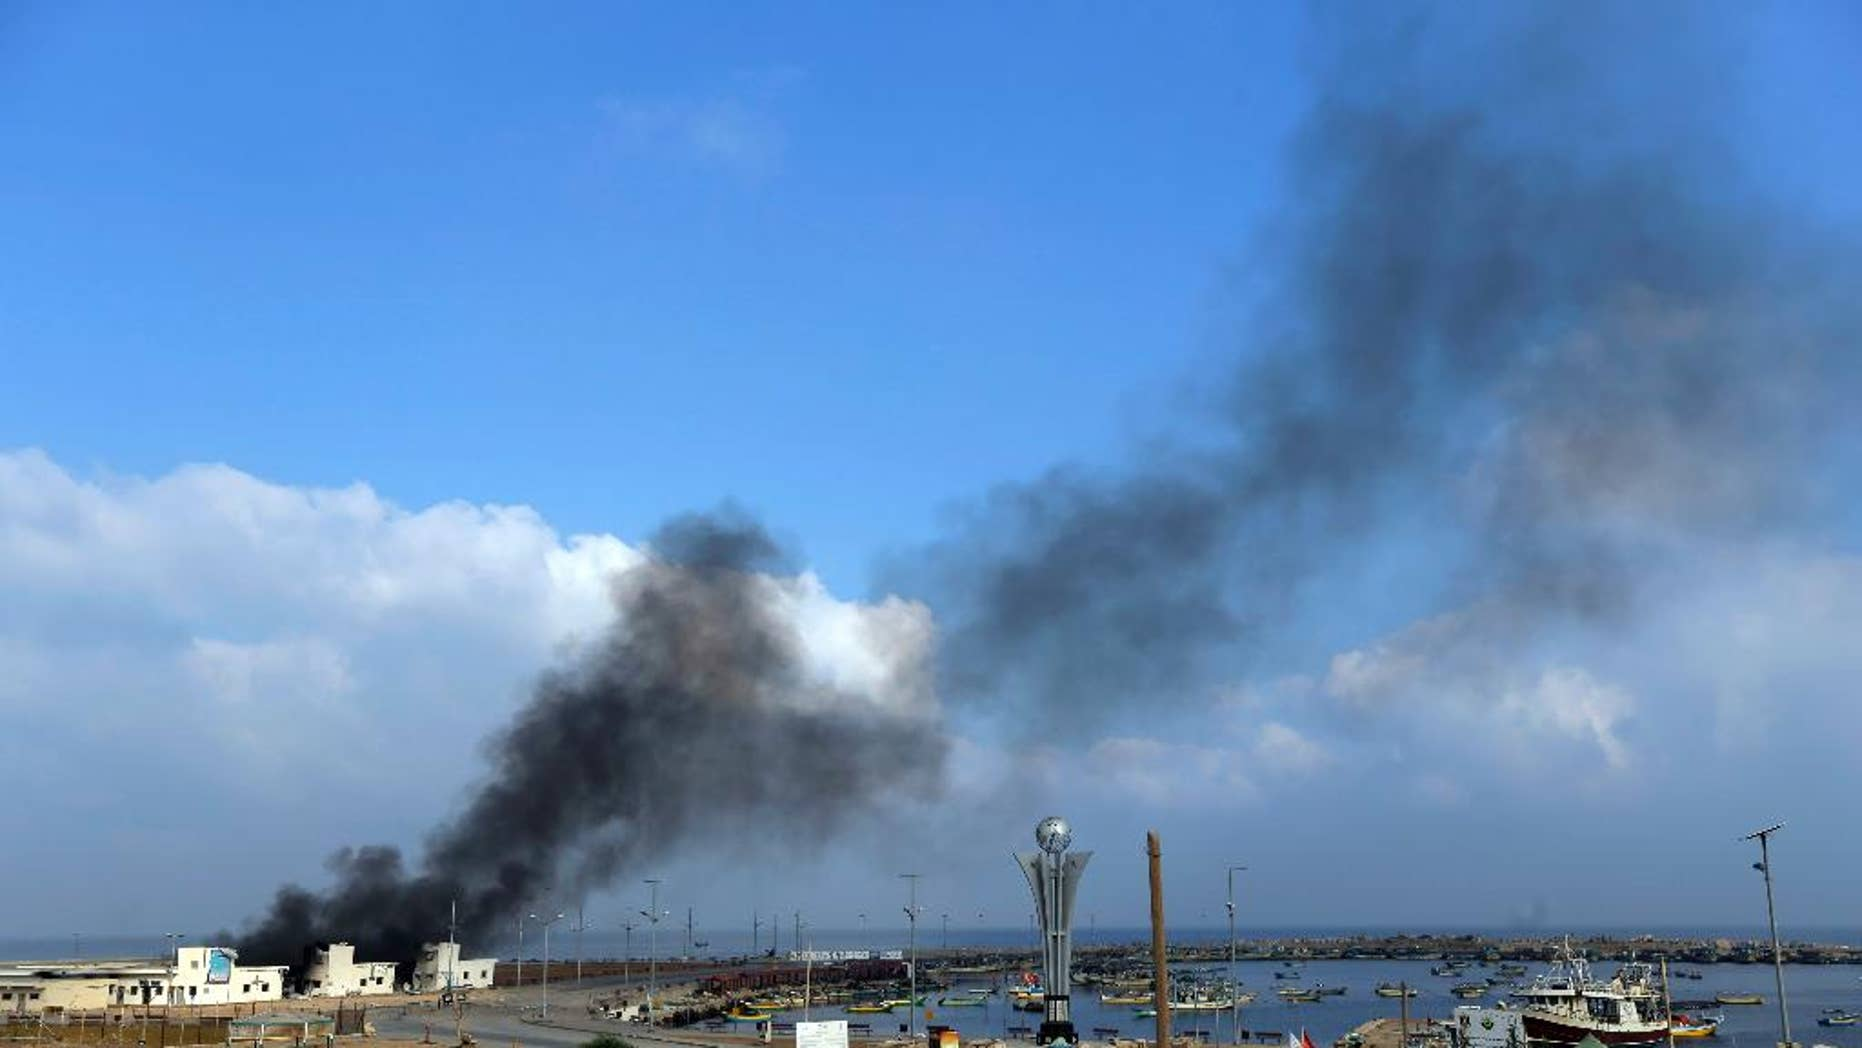 Smoke rises at the port in Gaza City, northern Gaza Strip, hit by an Israeli strike, Tuesday, July 29, 2014. According to Palestinians, the storage area at the port where the fishermen keep their nets and equipment was hit. Early Tuesday, Israel warplanes struck a series of targets in Gaza City, including Hamas leader Ismael Haniyeh's house and government offices, while Gaza's border area with Israel was hit by heavy tank shelling. (AP Photo/Lefteris Pitarakis)